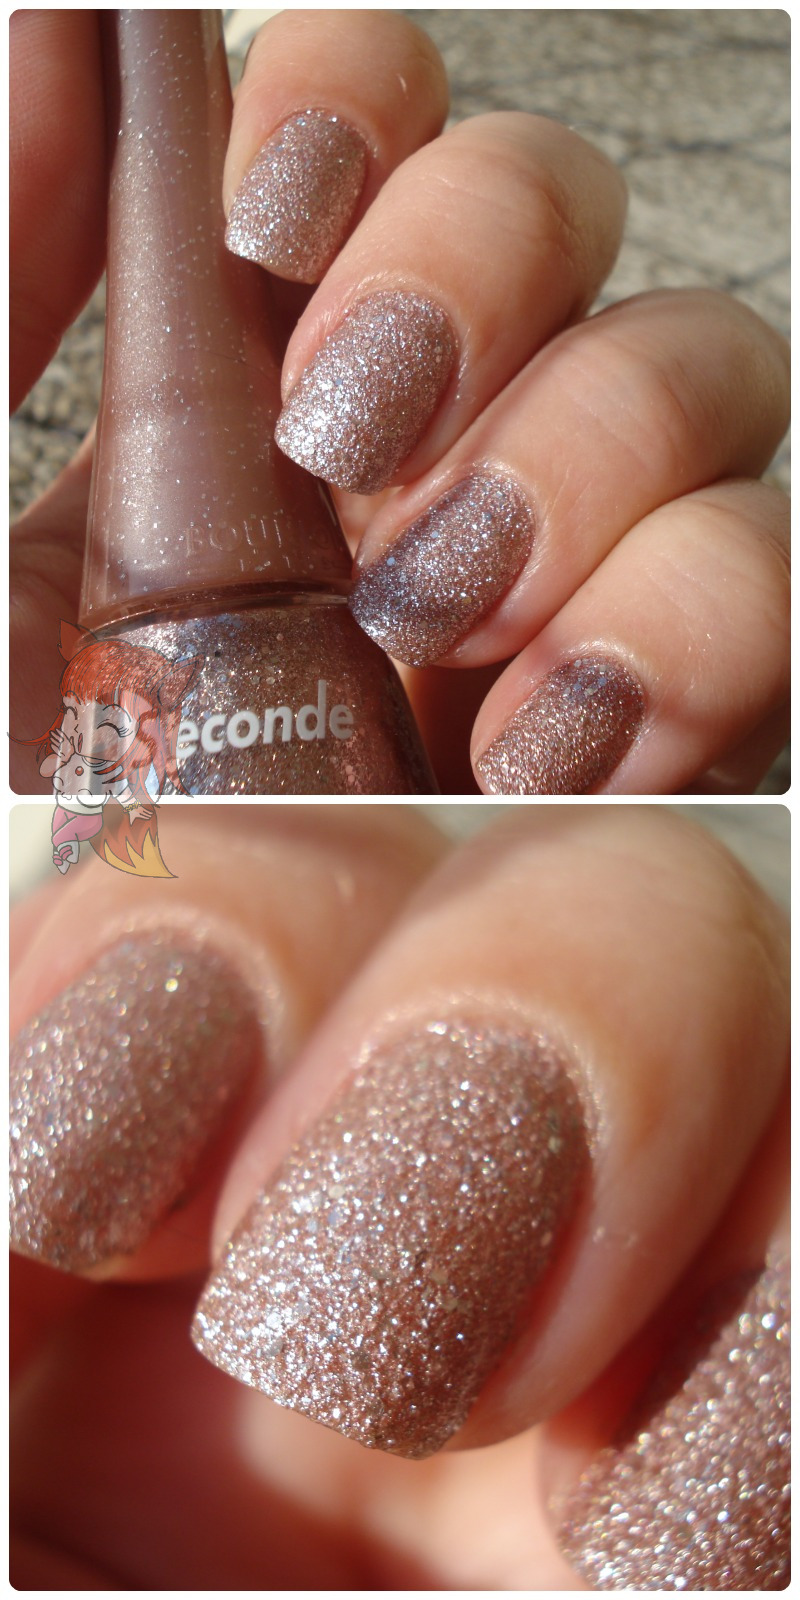 Esmalte Bourjois Liquid Sand :: Champagne Shower